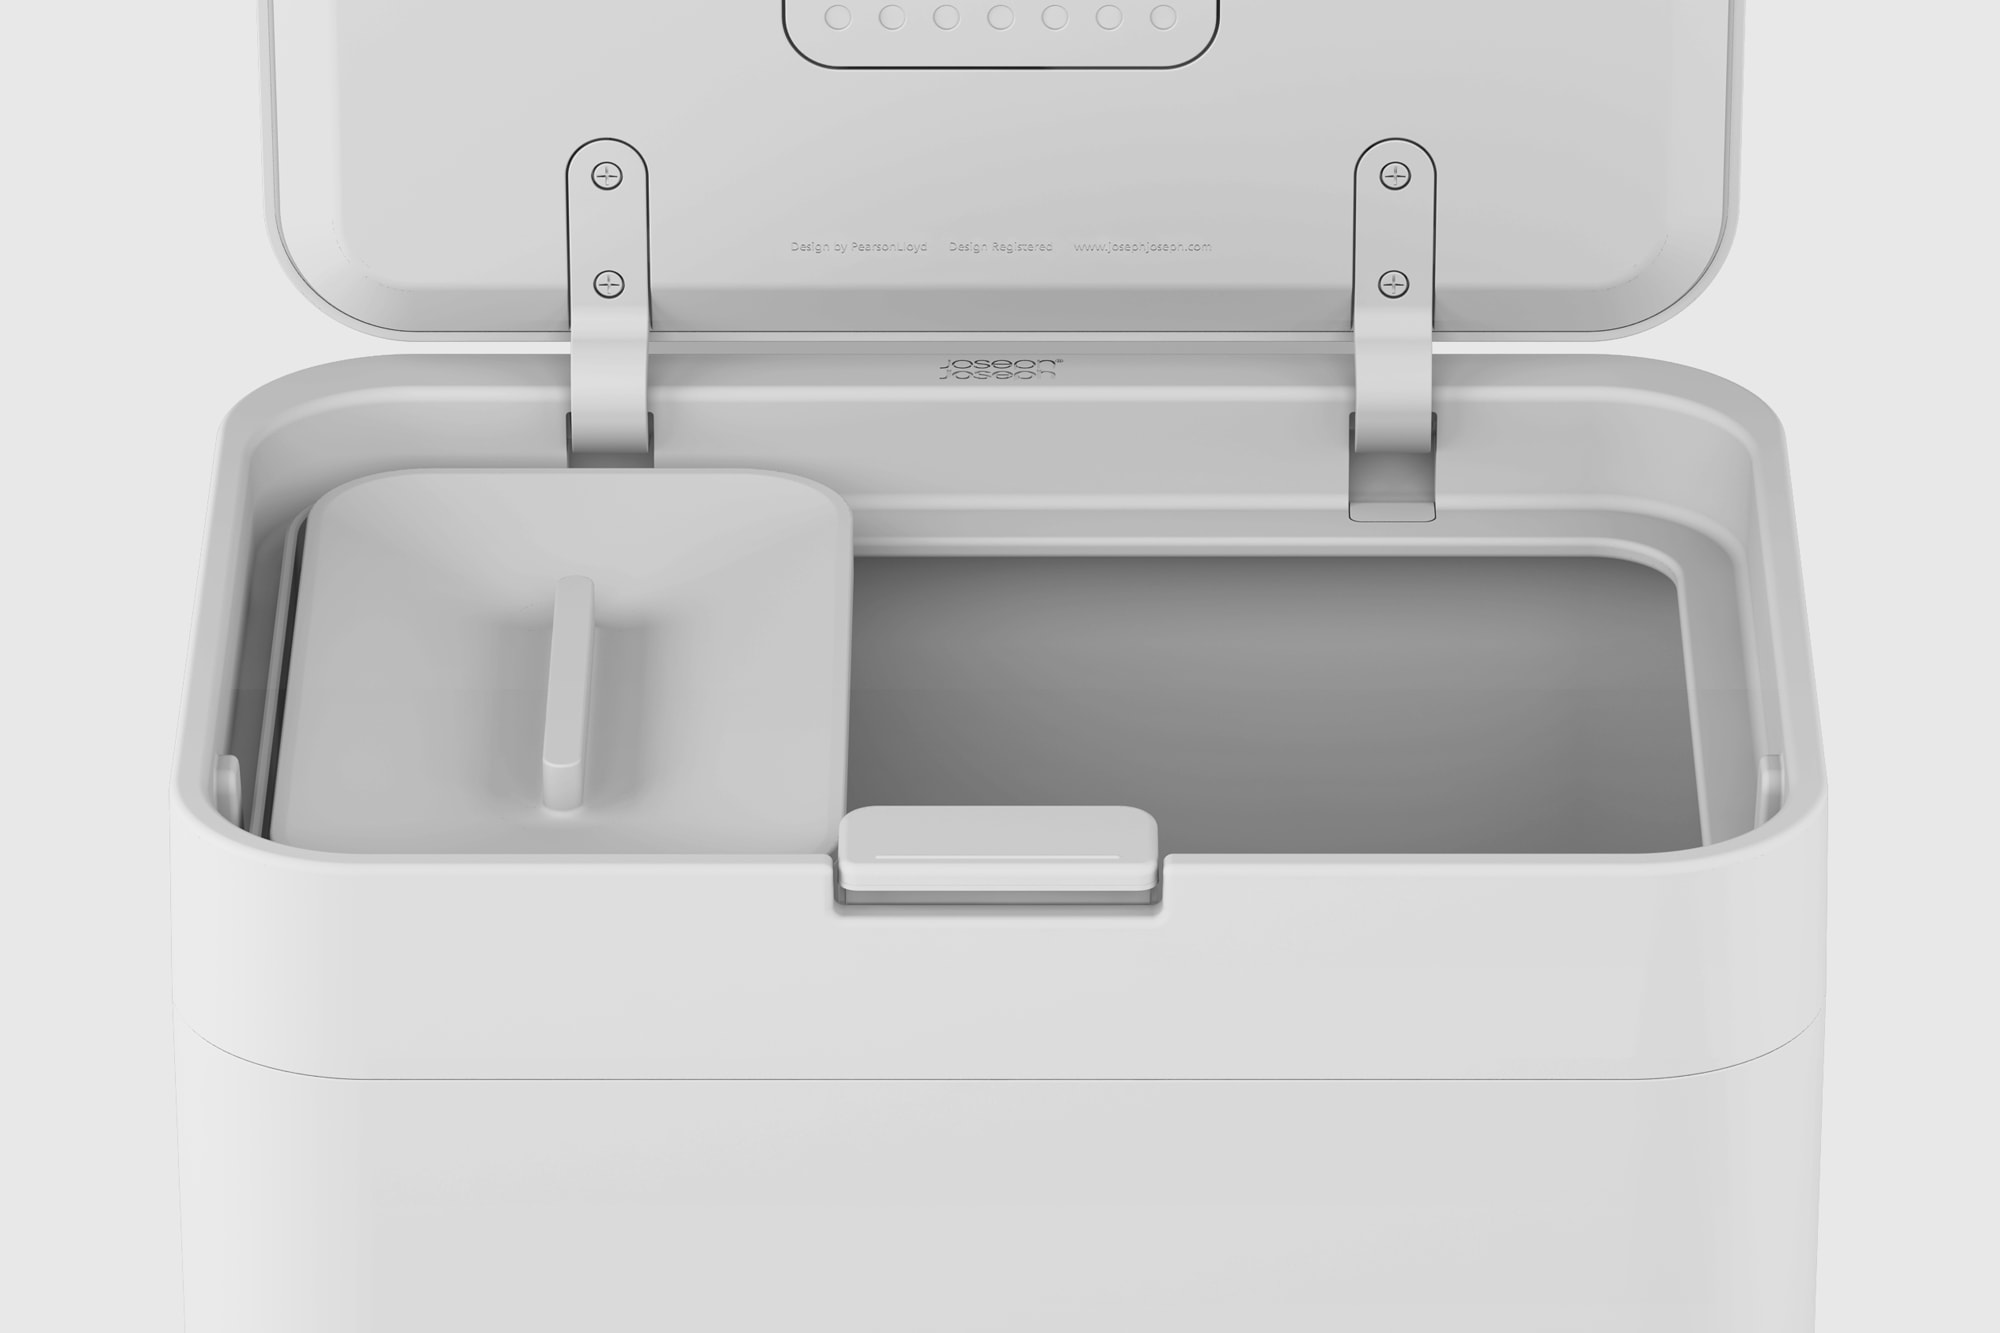 Front view of the top of the JosephJoseph Totem, a waste management container, greyscale render.